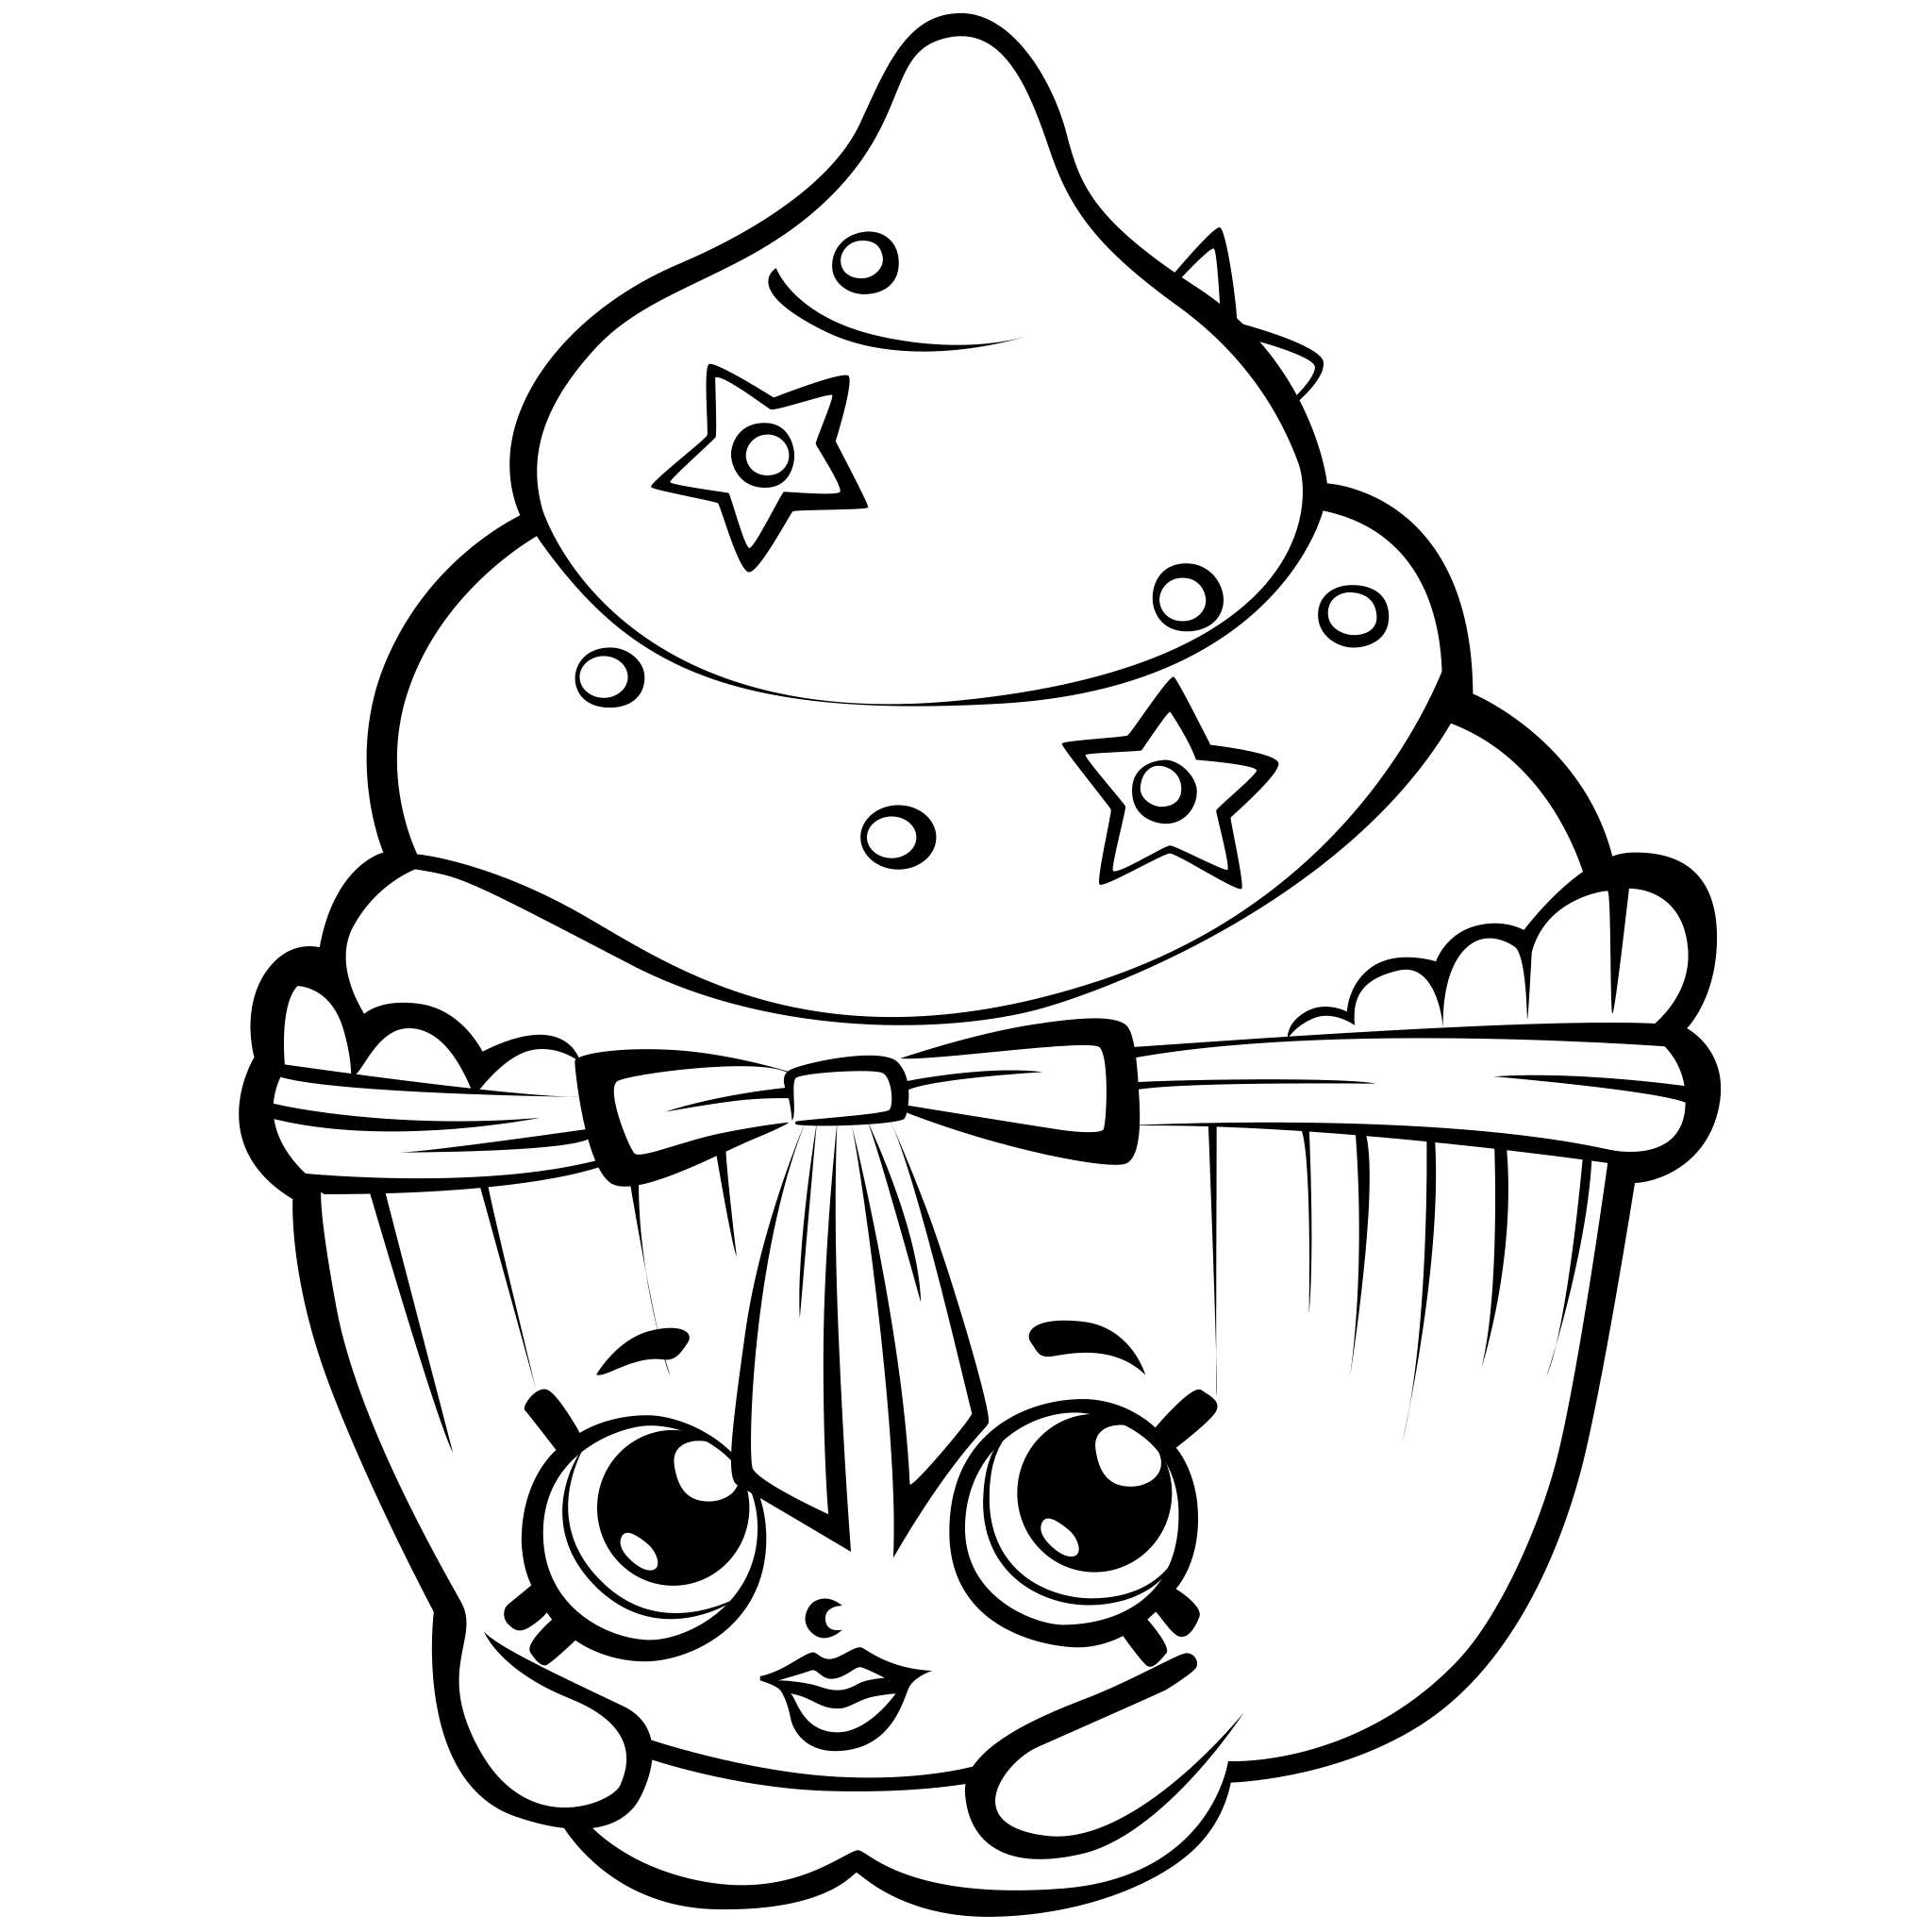 shopkins coloring pages printables - Colouring Pages Printables